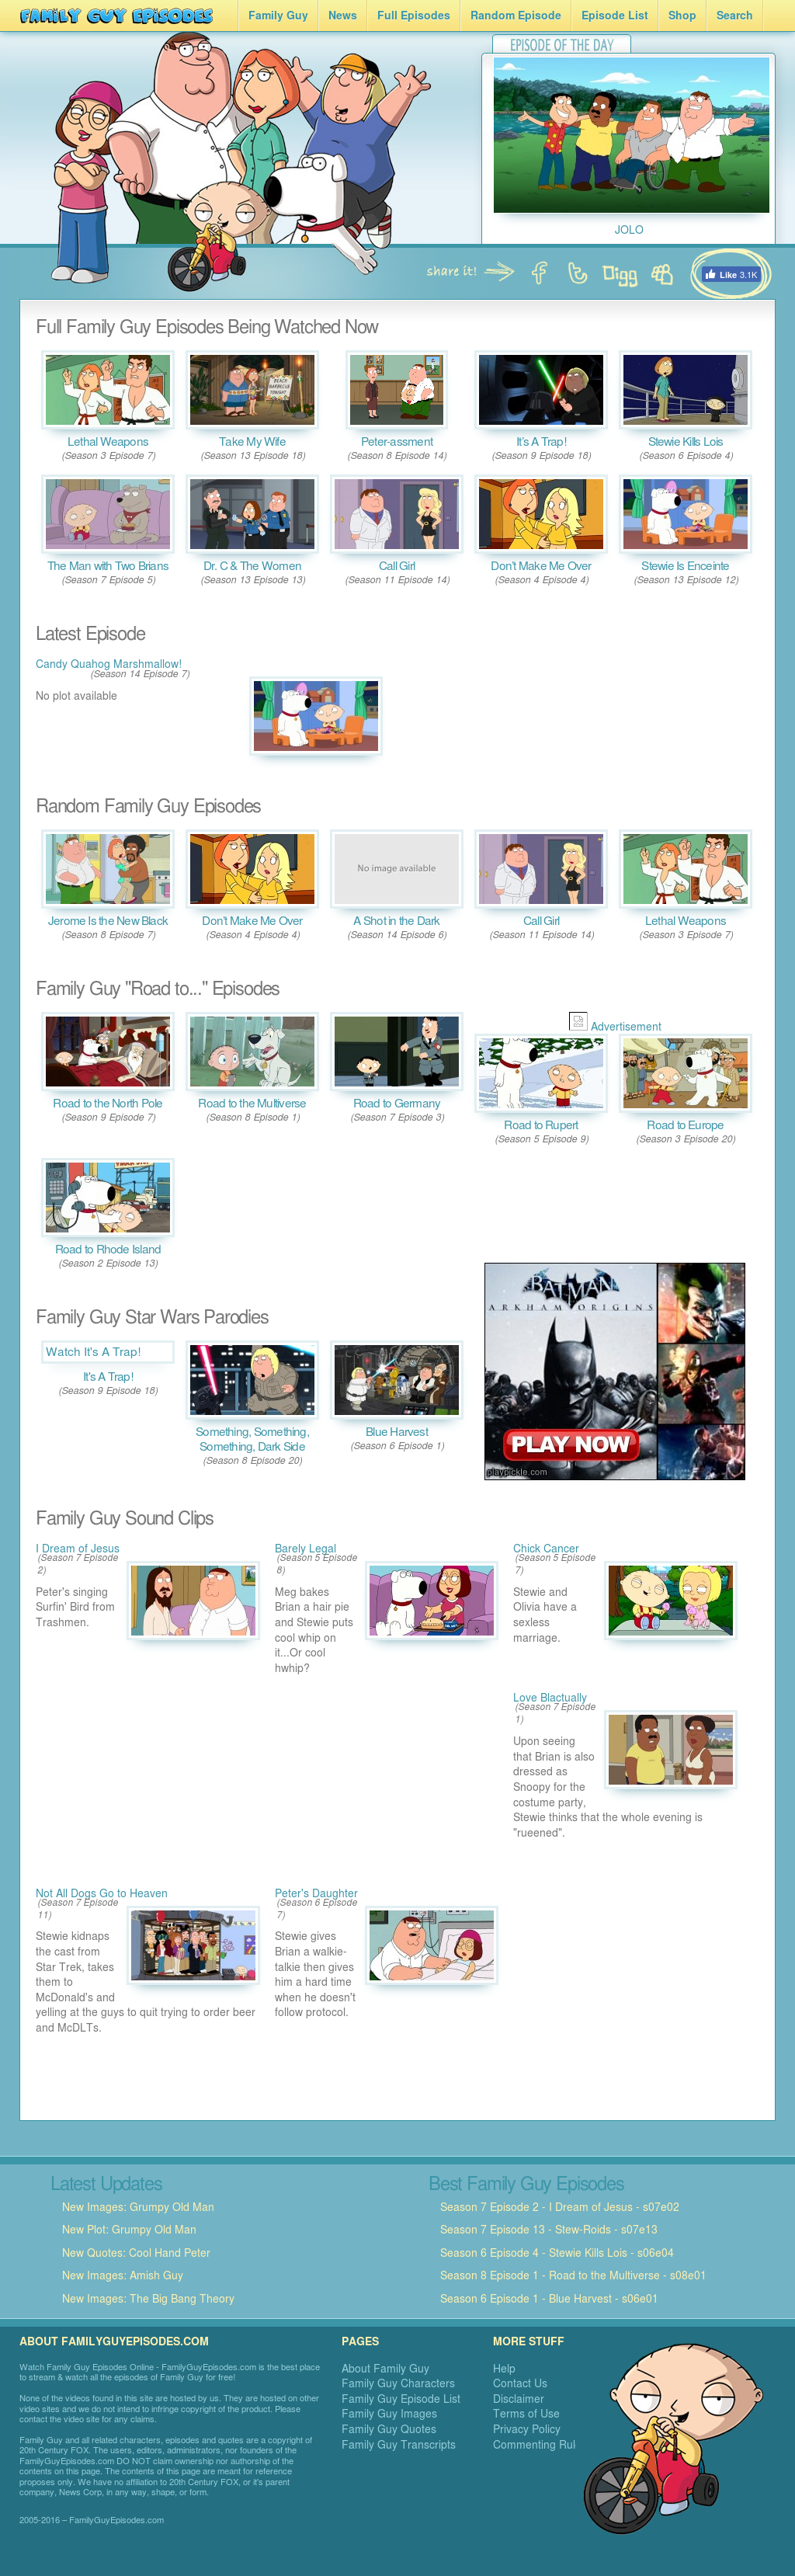 Family Guy Episodes Competitors, Revenue and Employees